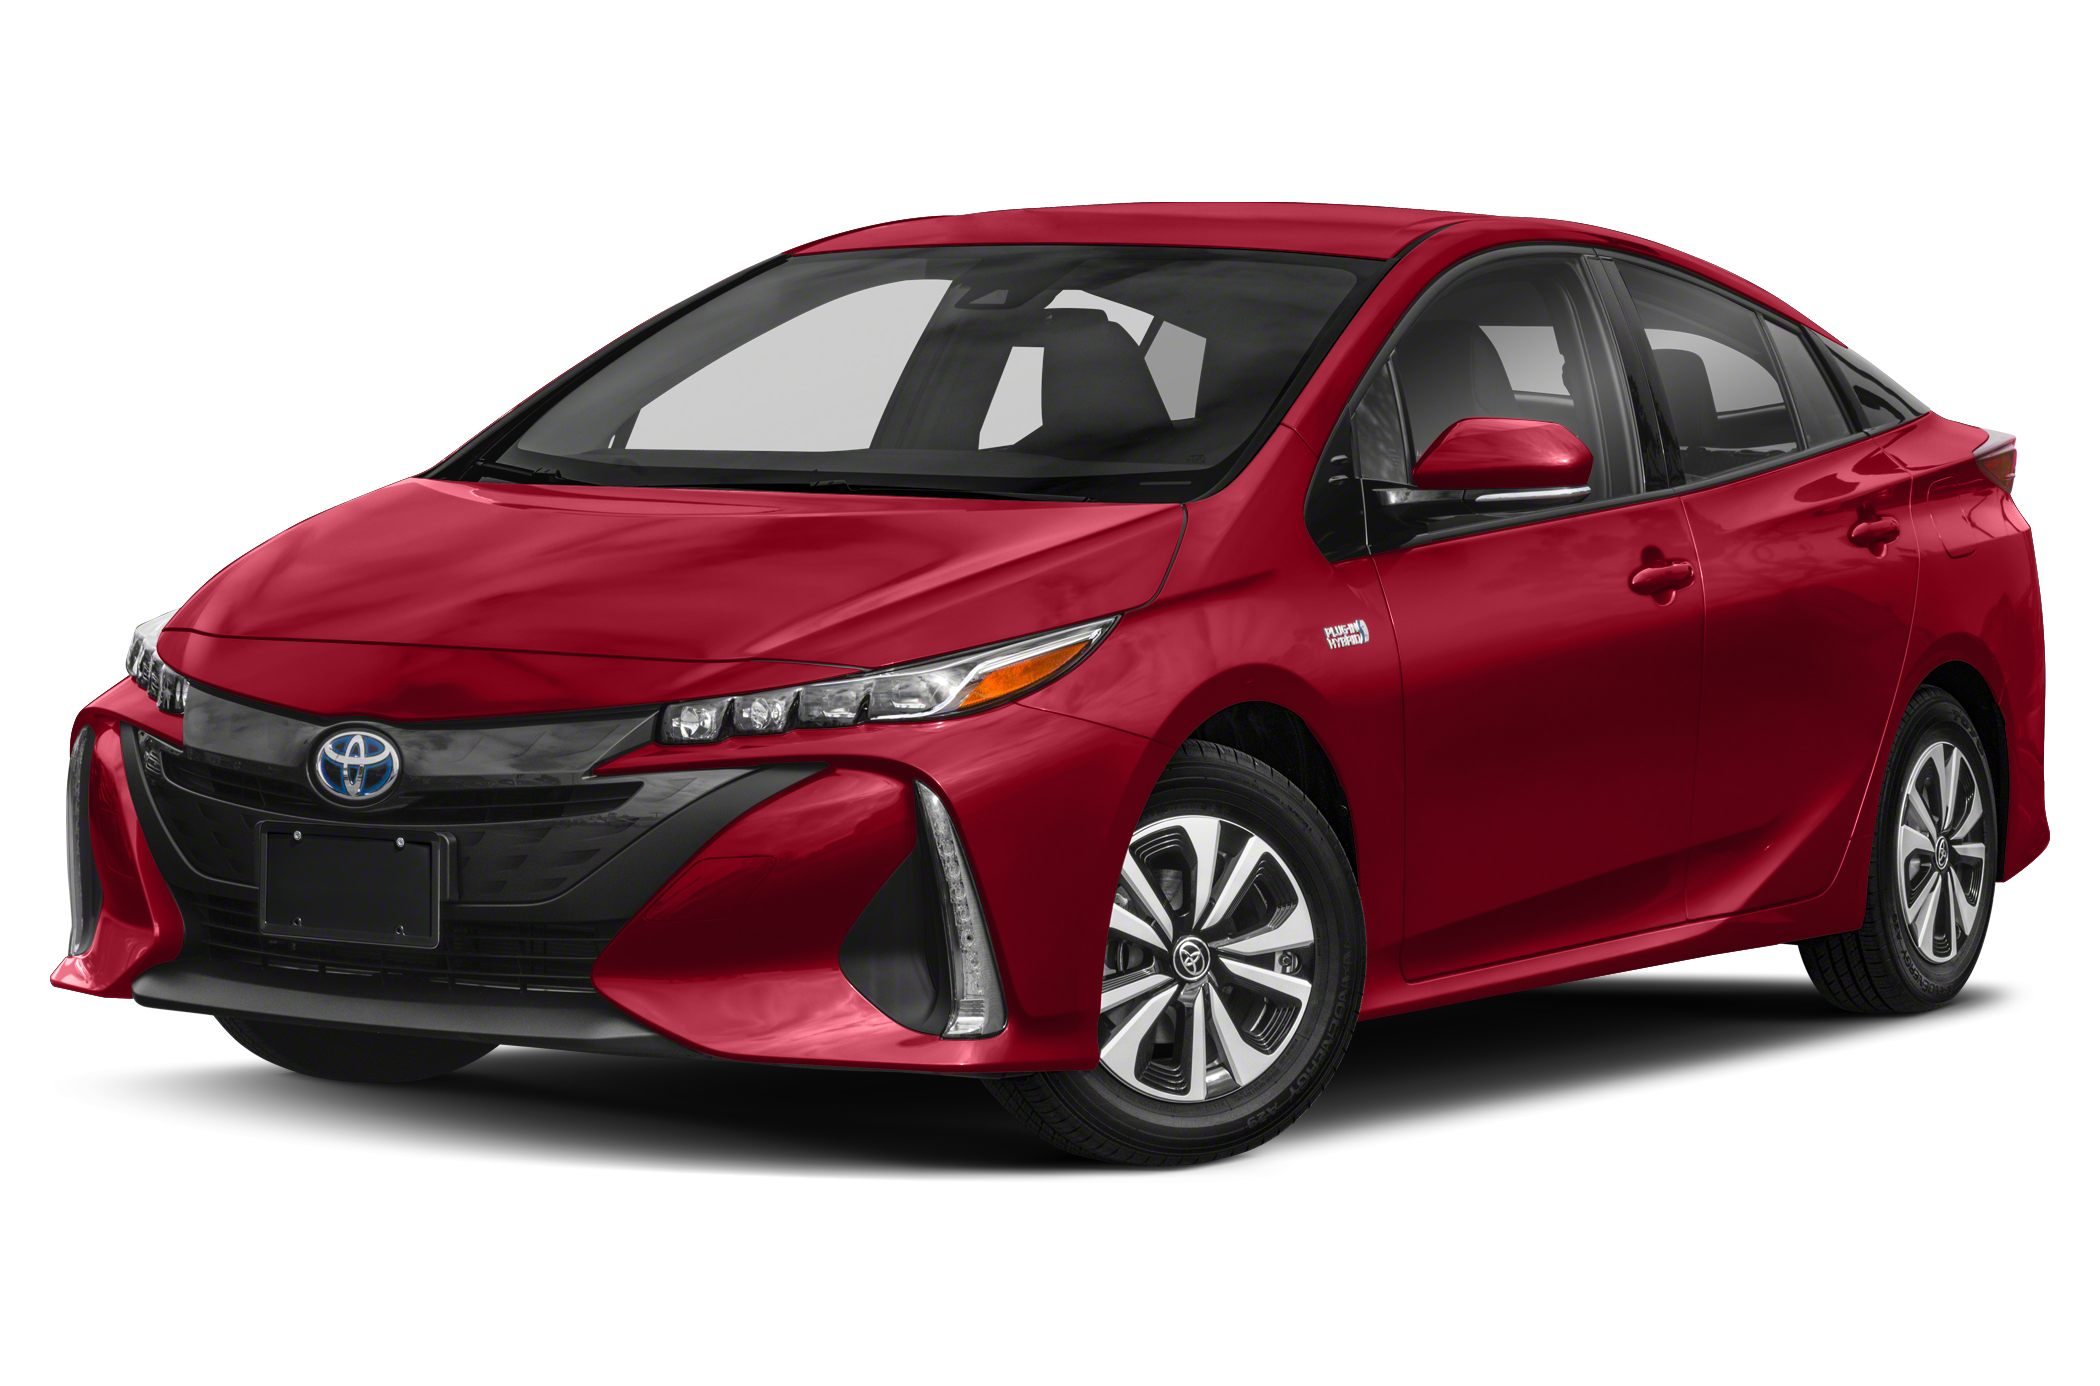 2017 Toyota Prius Prime  Navigation Lane Assist Heated Seats Satellite Cd with MP3 and Steering